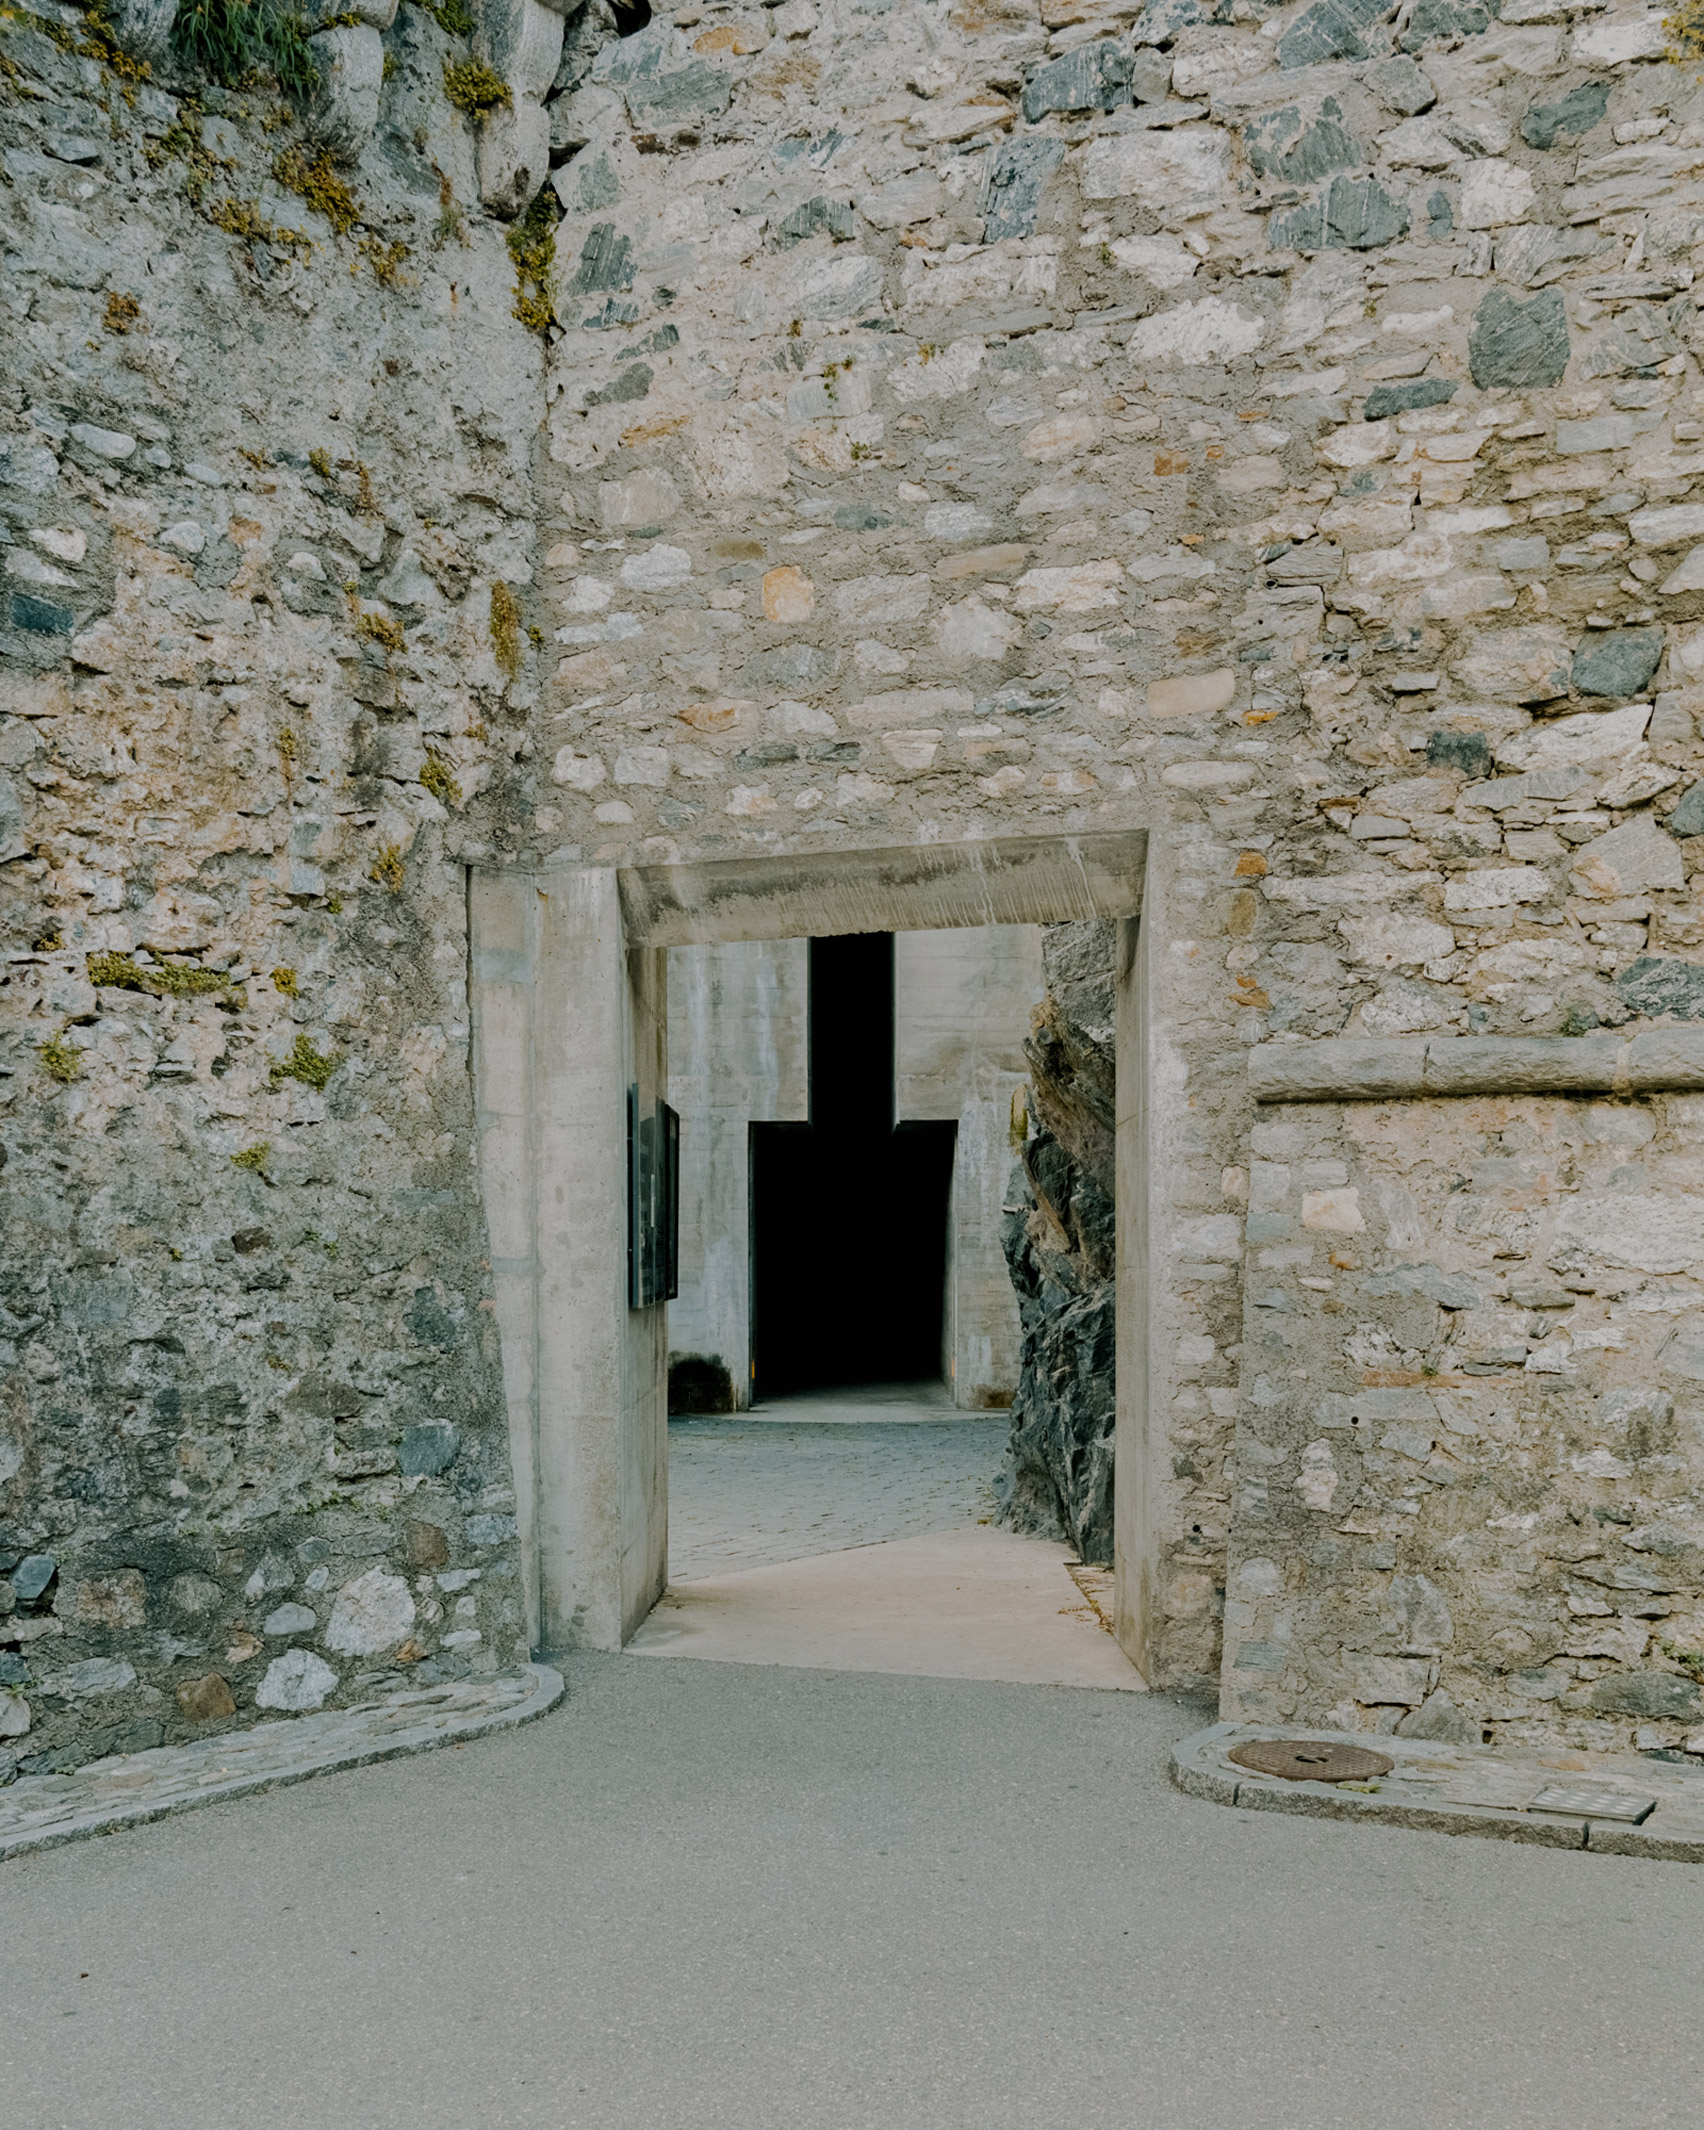 The gate leading to the Castelgrande entrance by Aurelio Galfetti, captured by Simone Bossi